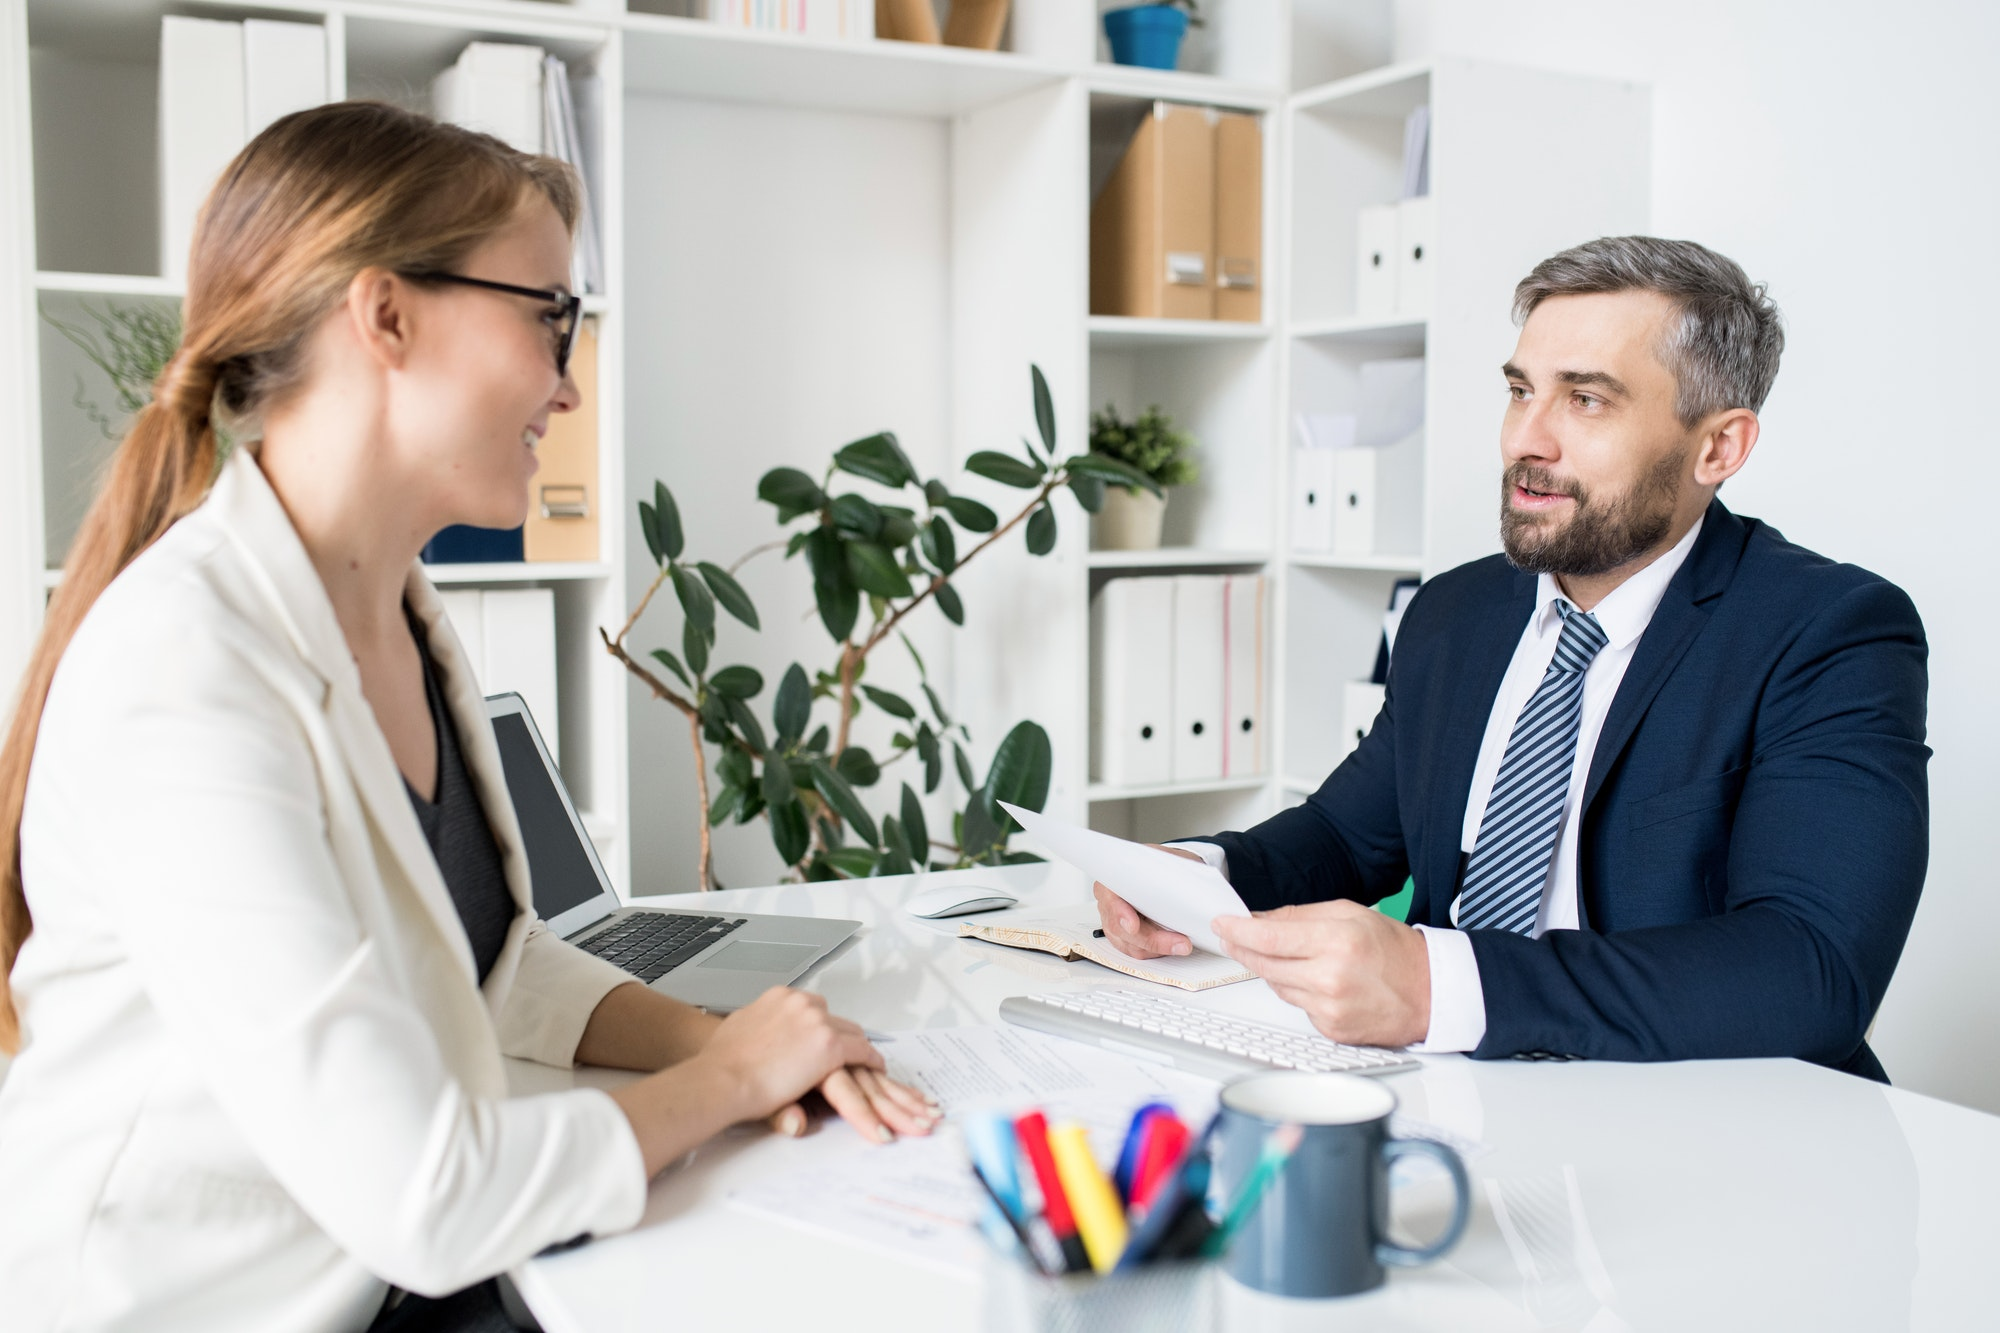 HR manager interviewing job candidate